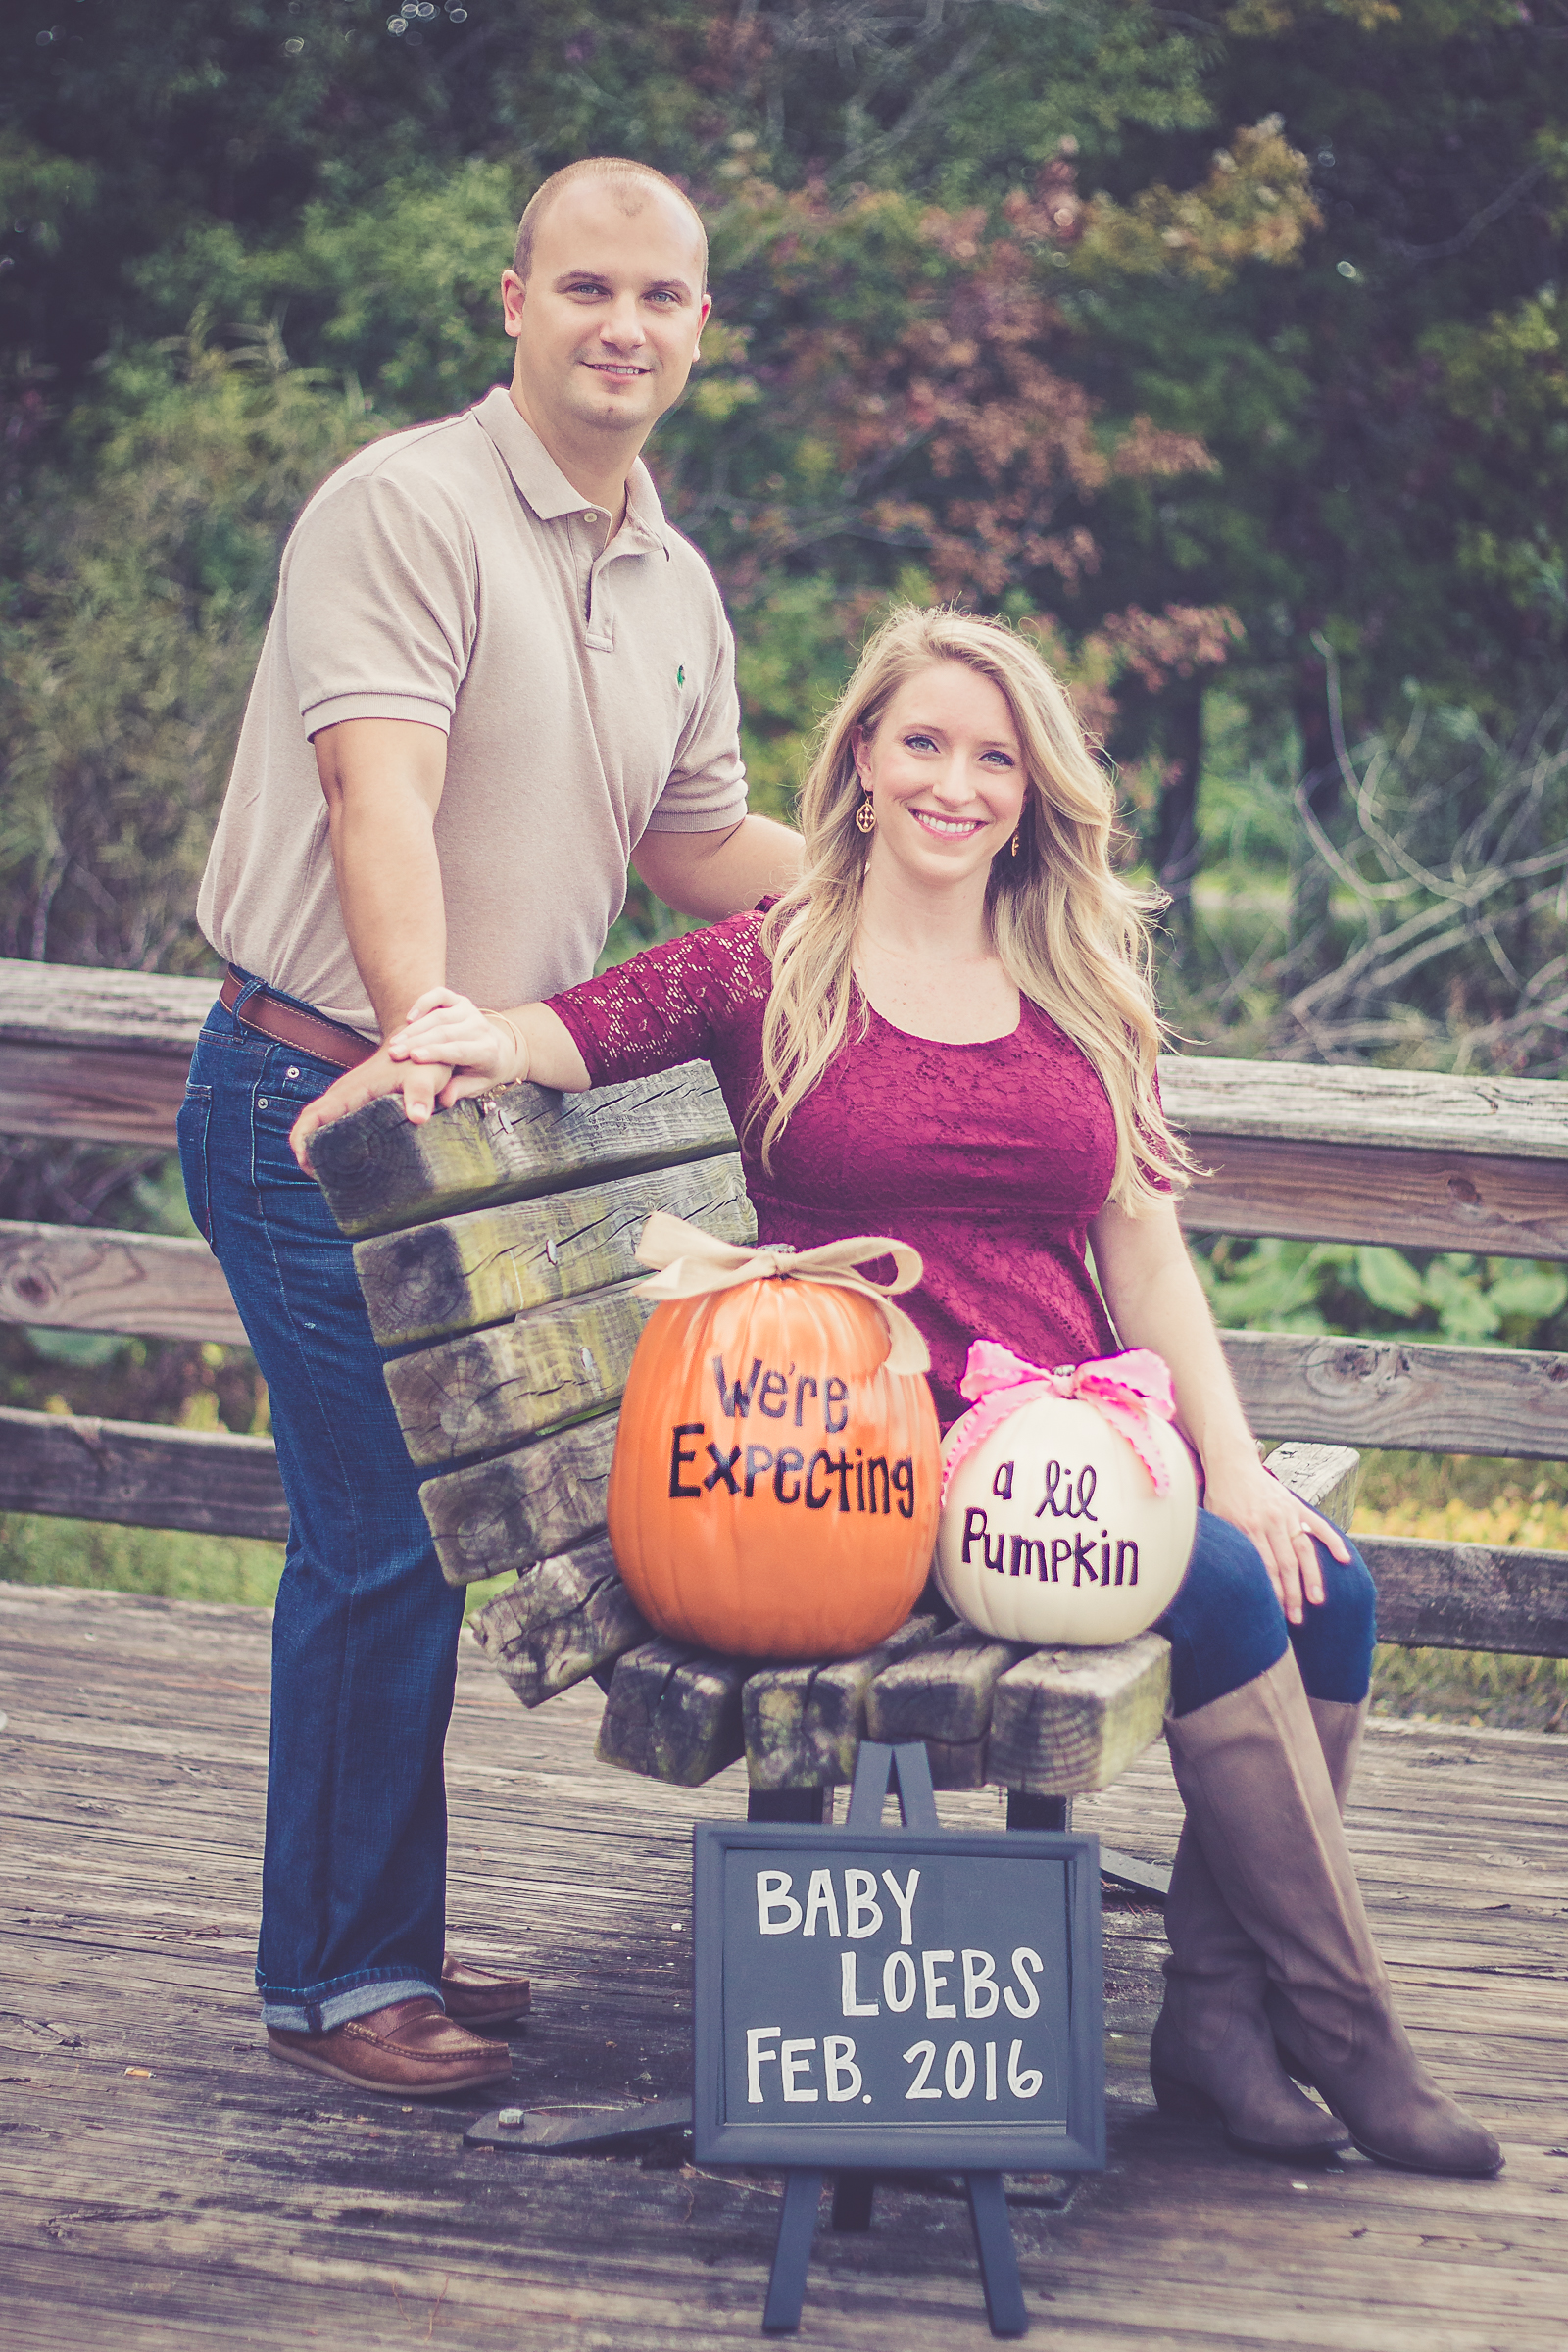 Stacy and Todd postcard 1 Sept 2015.jpg